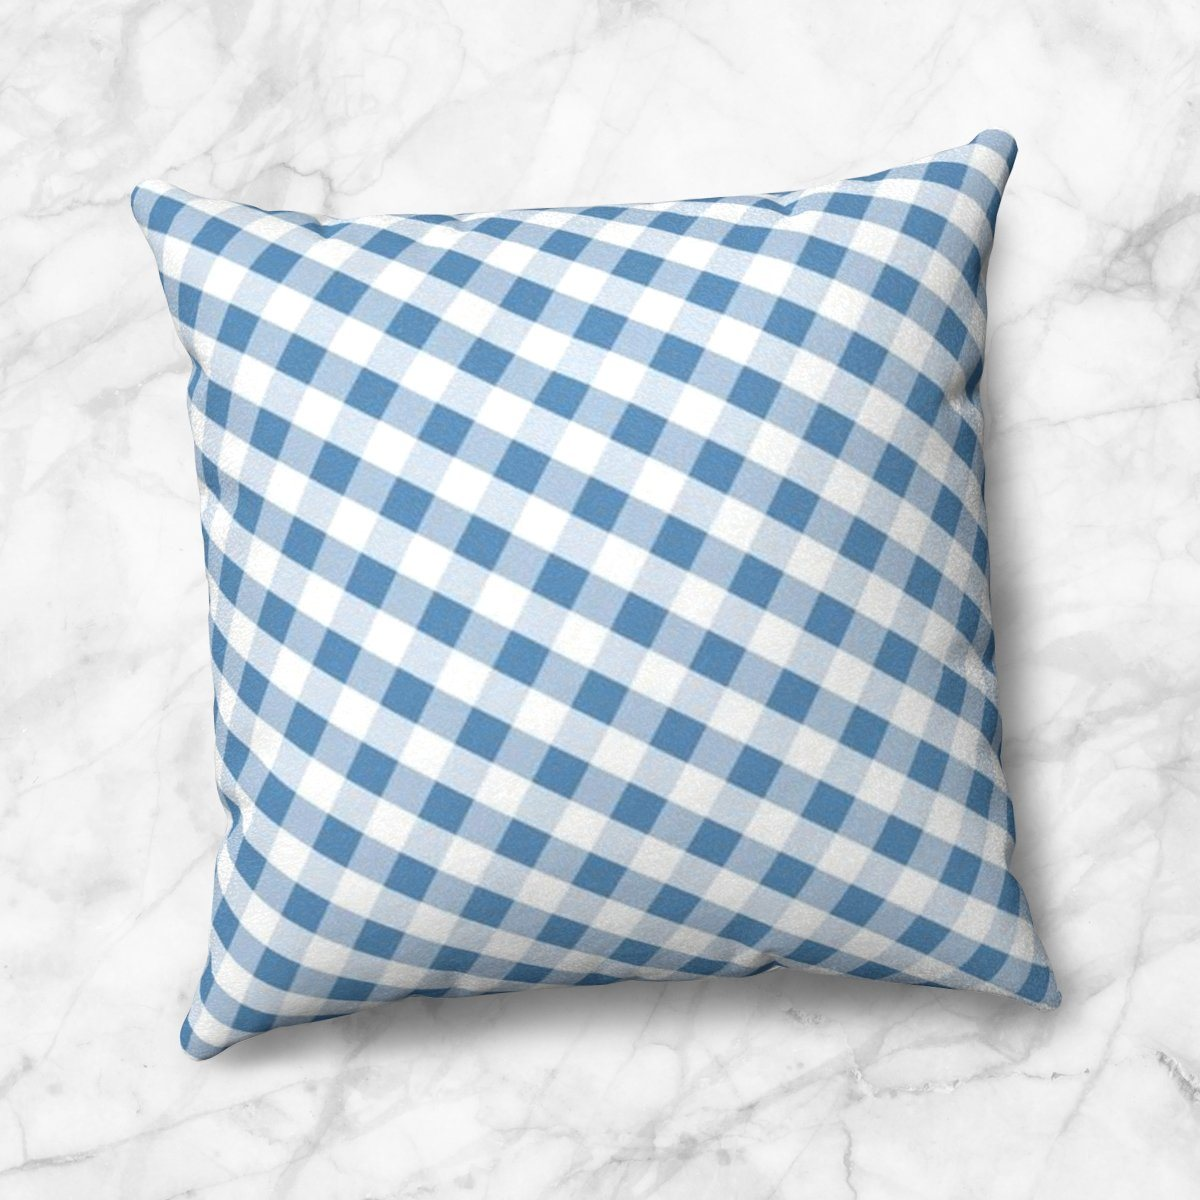 Blue Gingham Throw Pillow at Speckle Rock